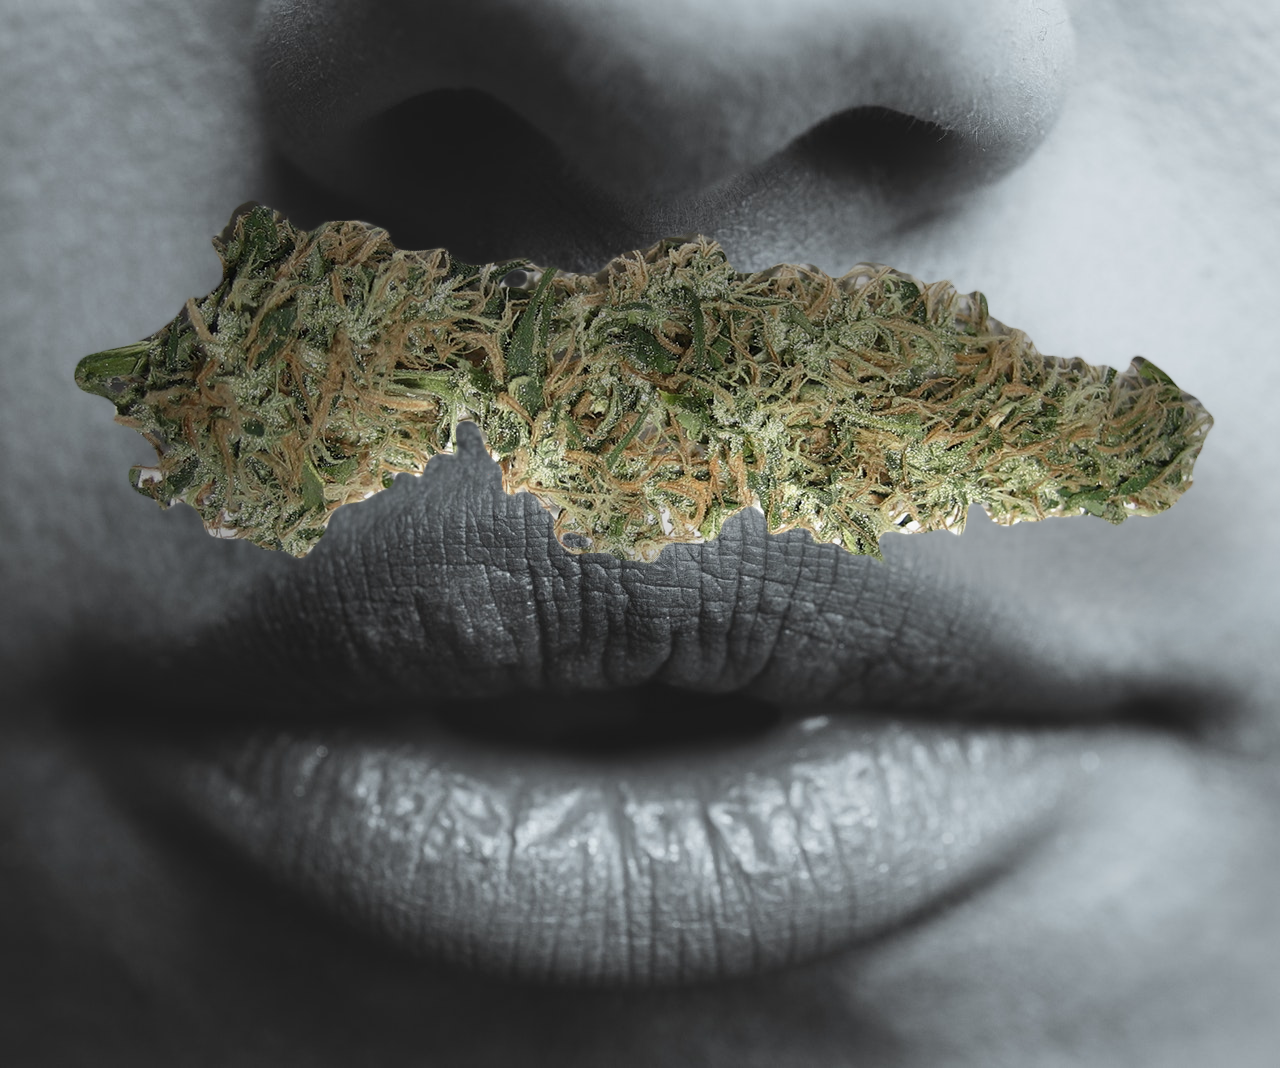 10 Tips on How to NOT Smell Like Weed - Mary Jane's Diary